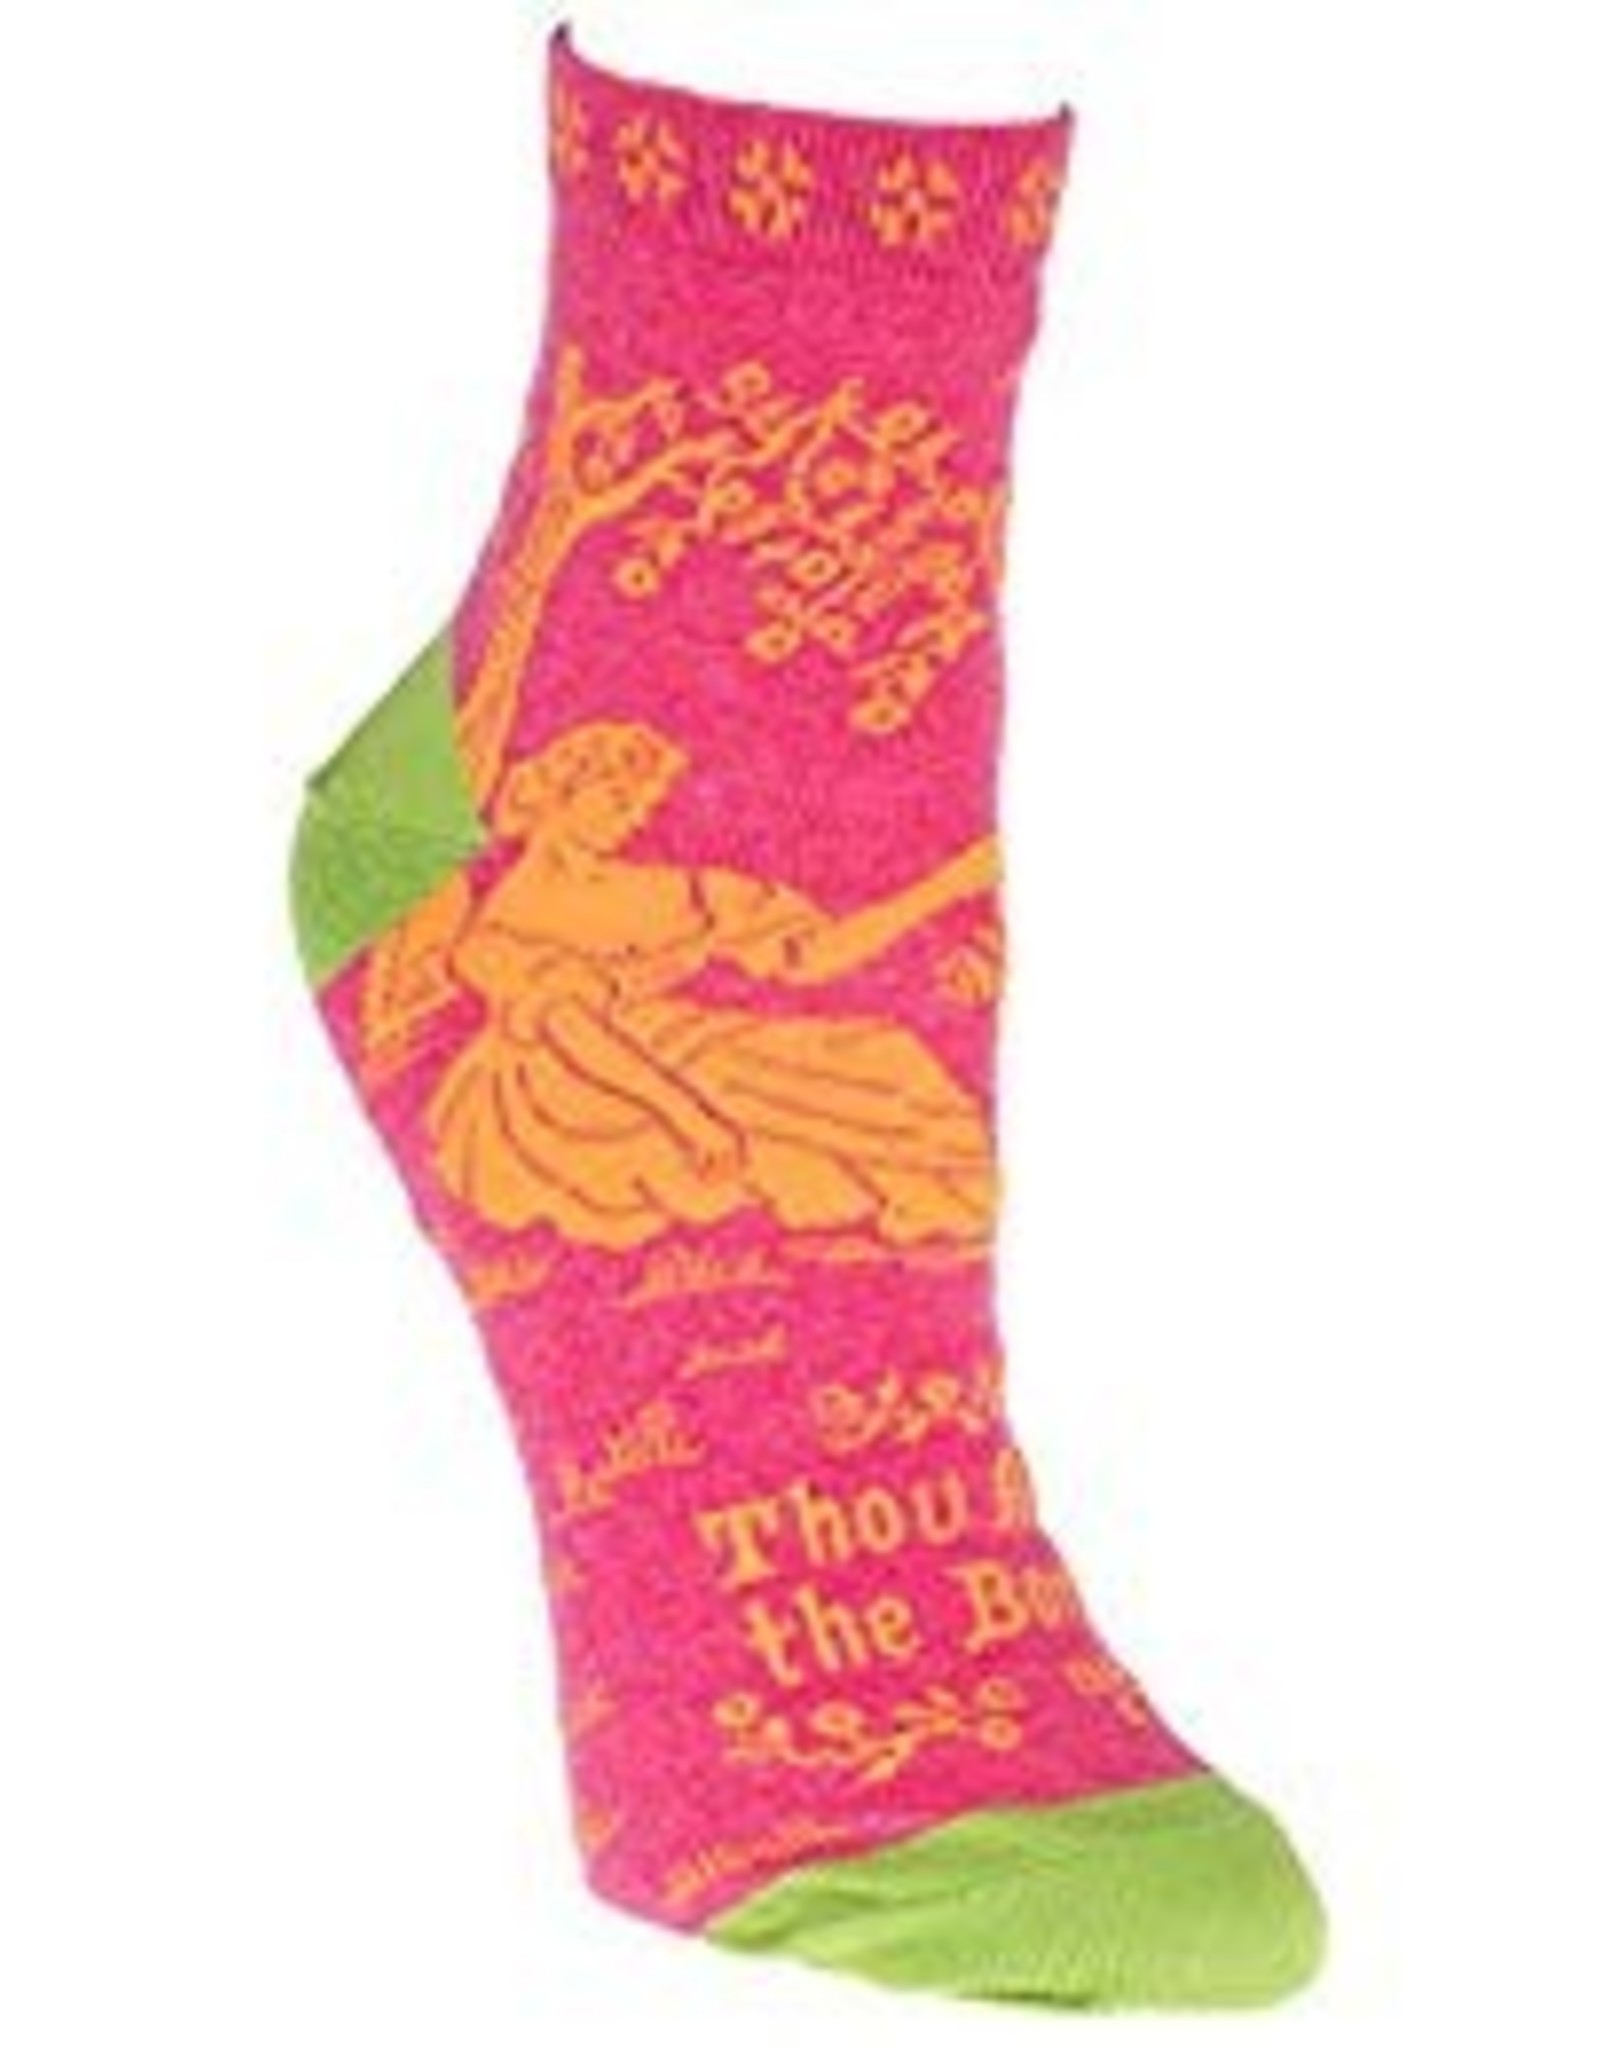 Blue Q Womens Ankle Socks - Thou Art The Bomb